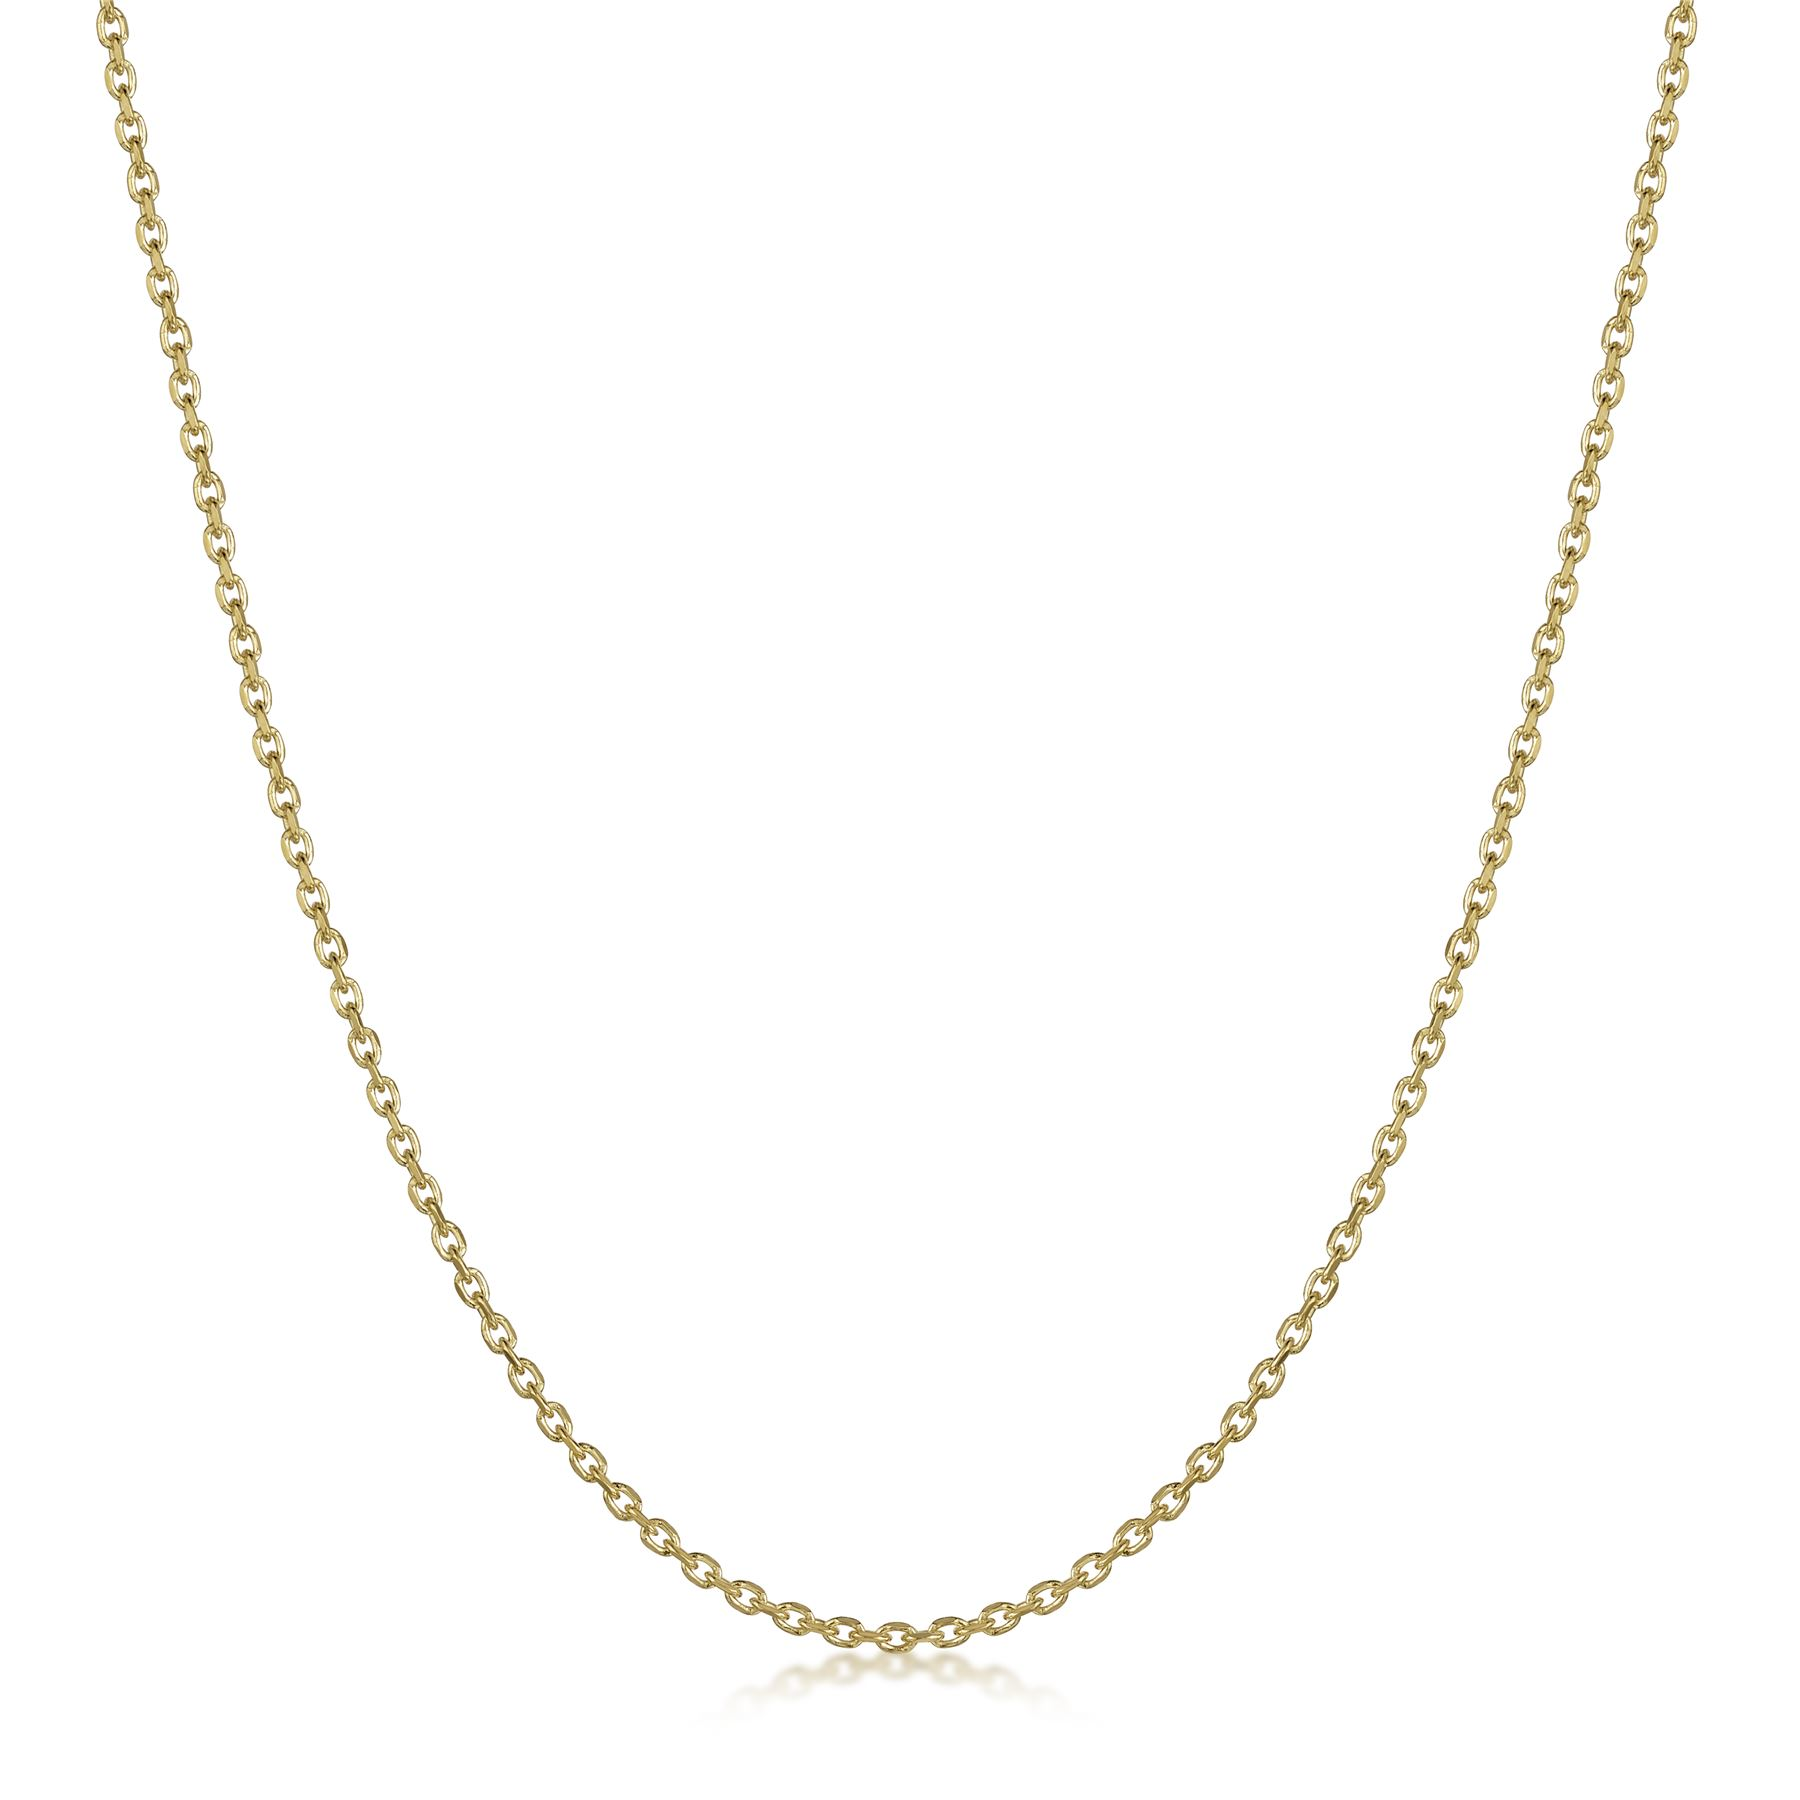 Amberta-Genuine-Gold-Plated-on-Real-925-Sterling-Silver-Necklace-Chain-Italy miniatura 15